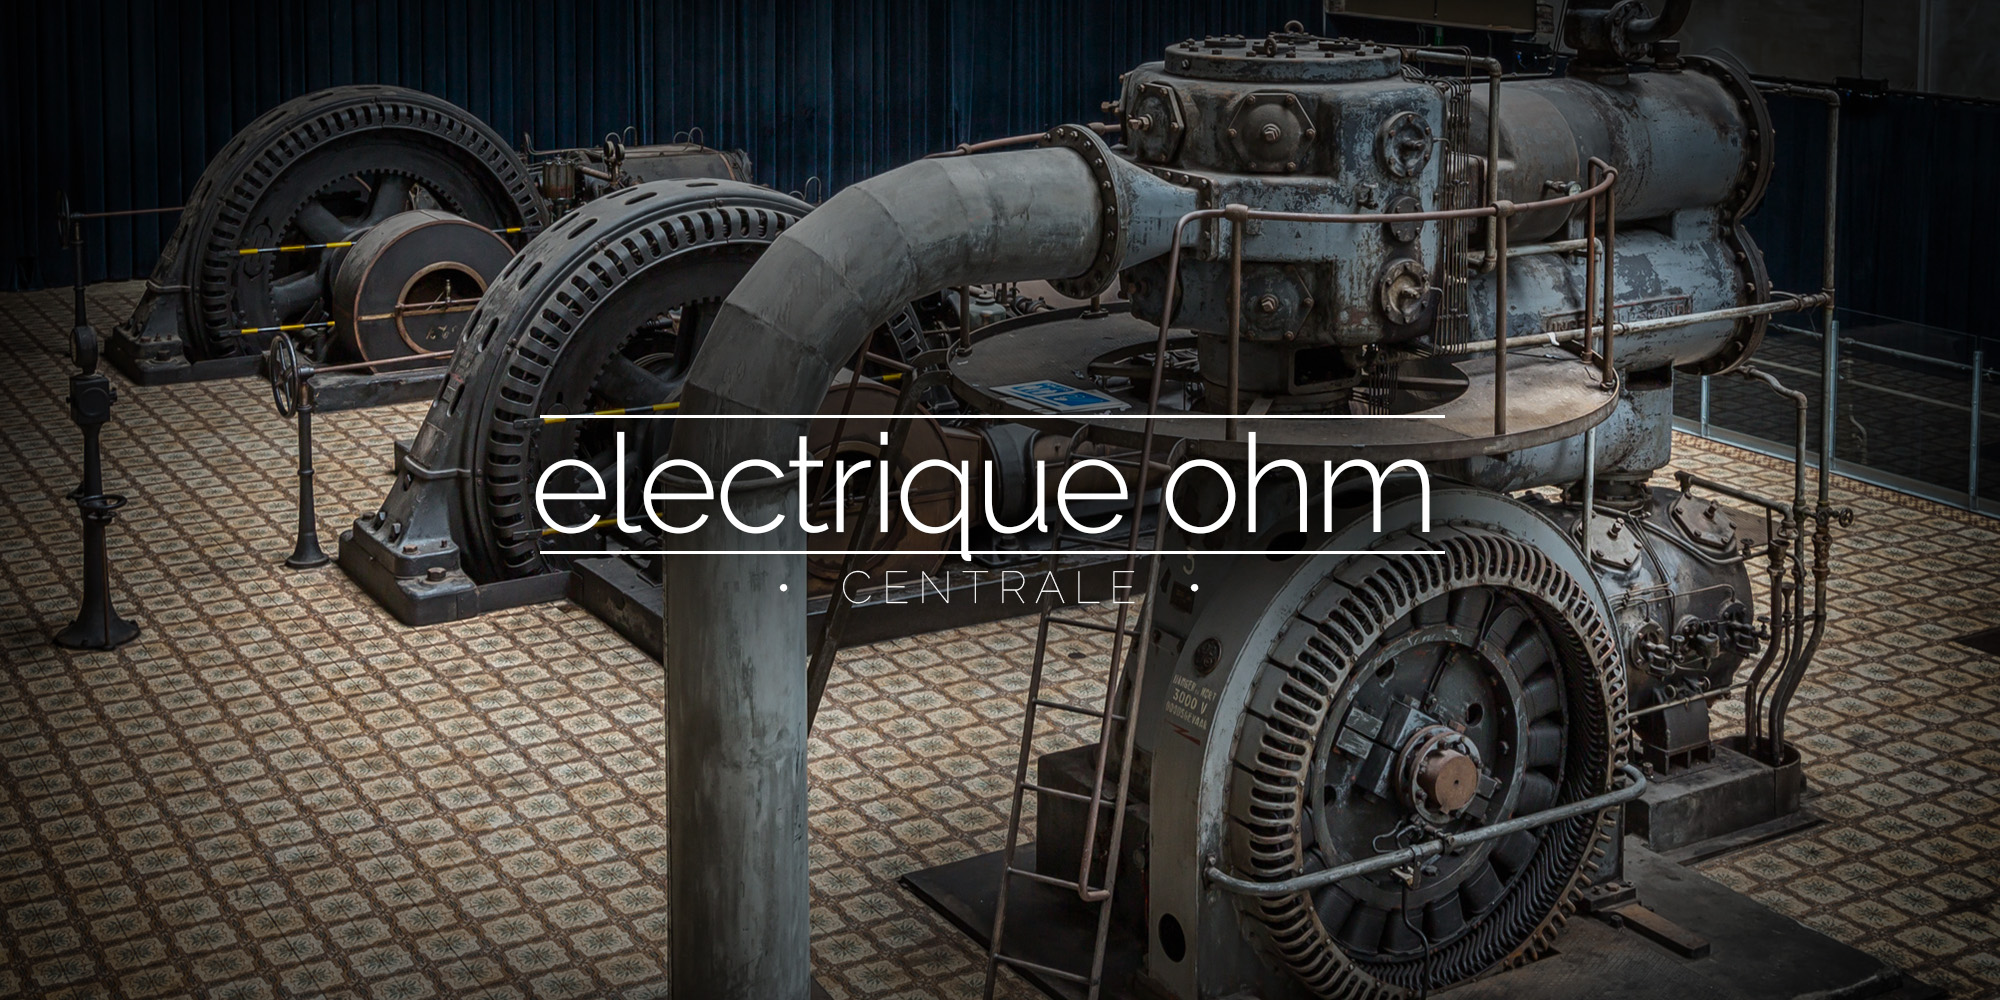 Central Electrique Ohm, Power Station, Belgium